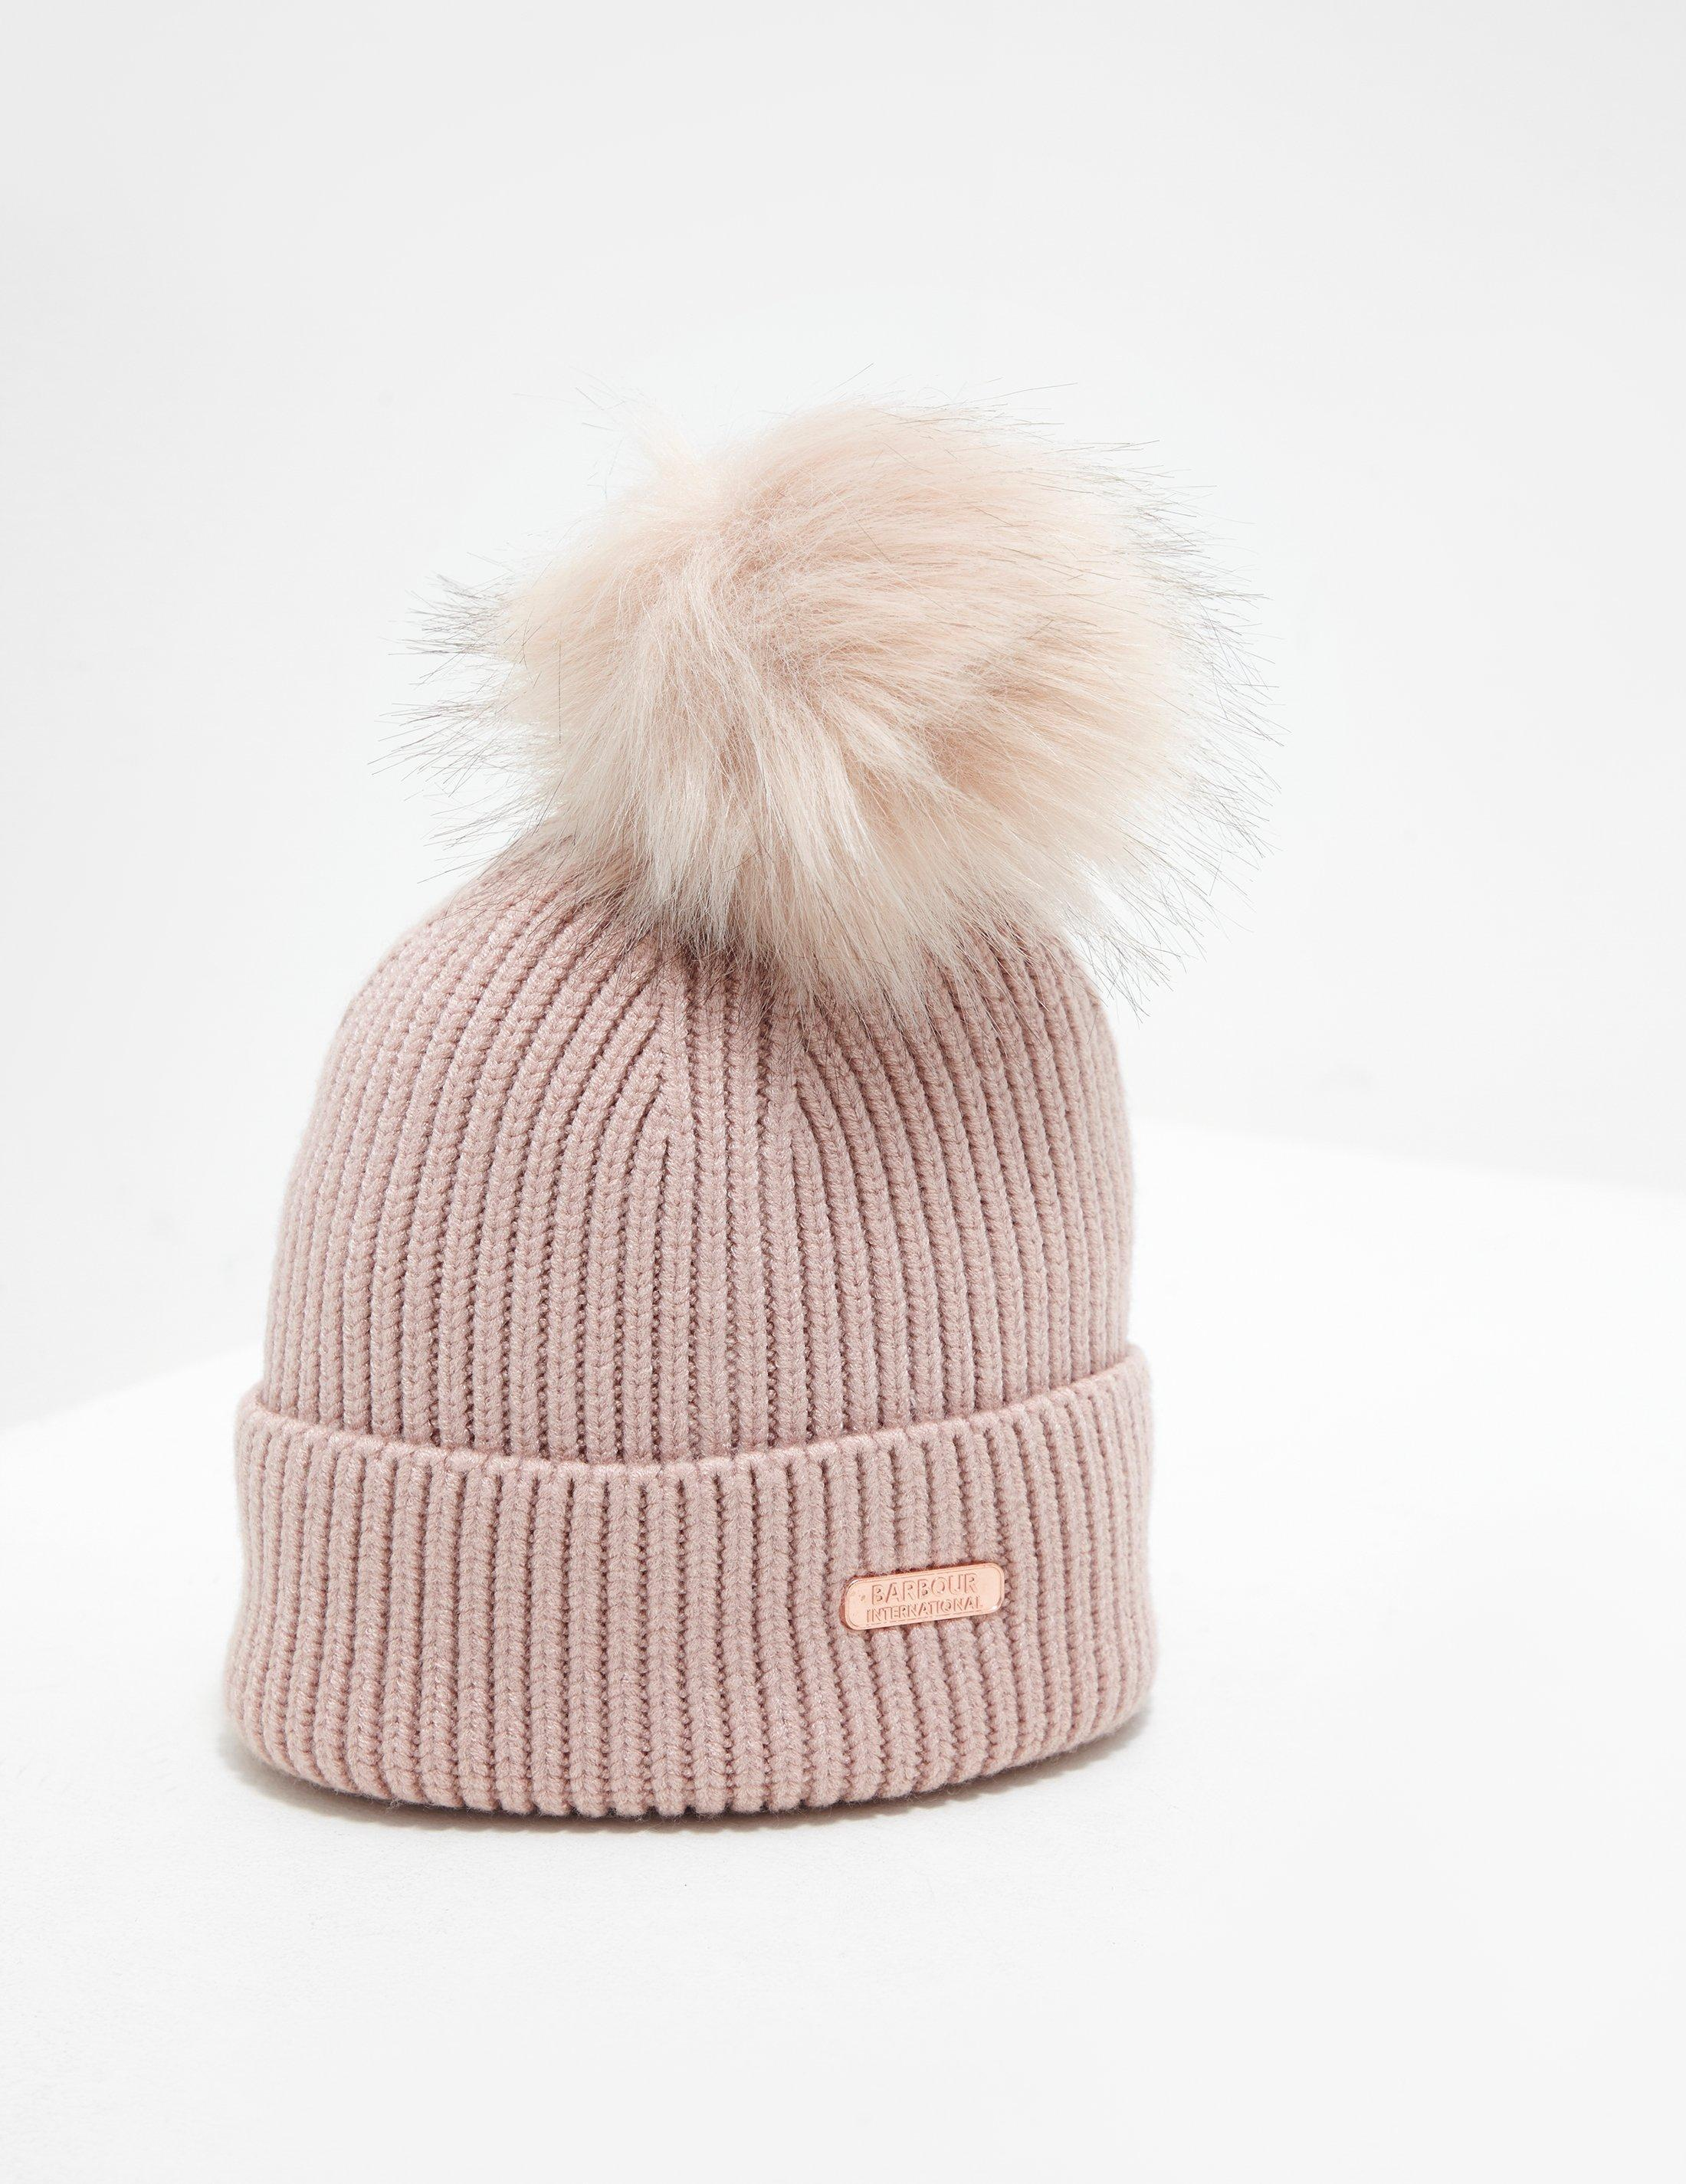 Lyst - Barbour Womens Mallory Pompom Beanie Pink in Pink d338cad1d27